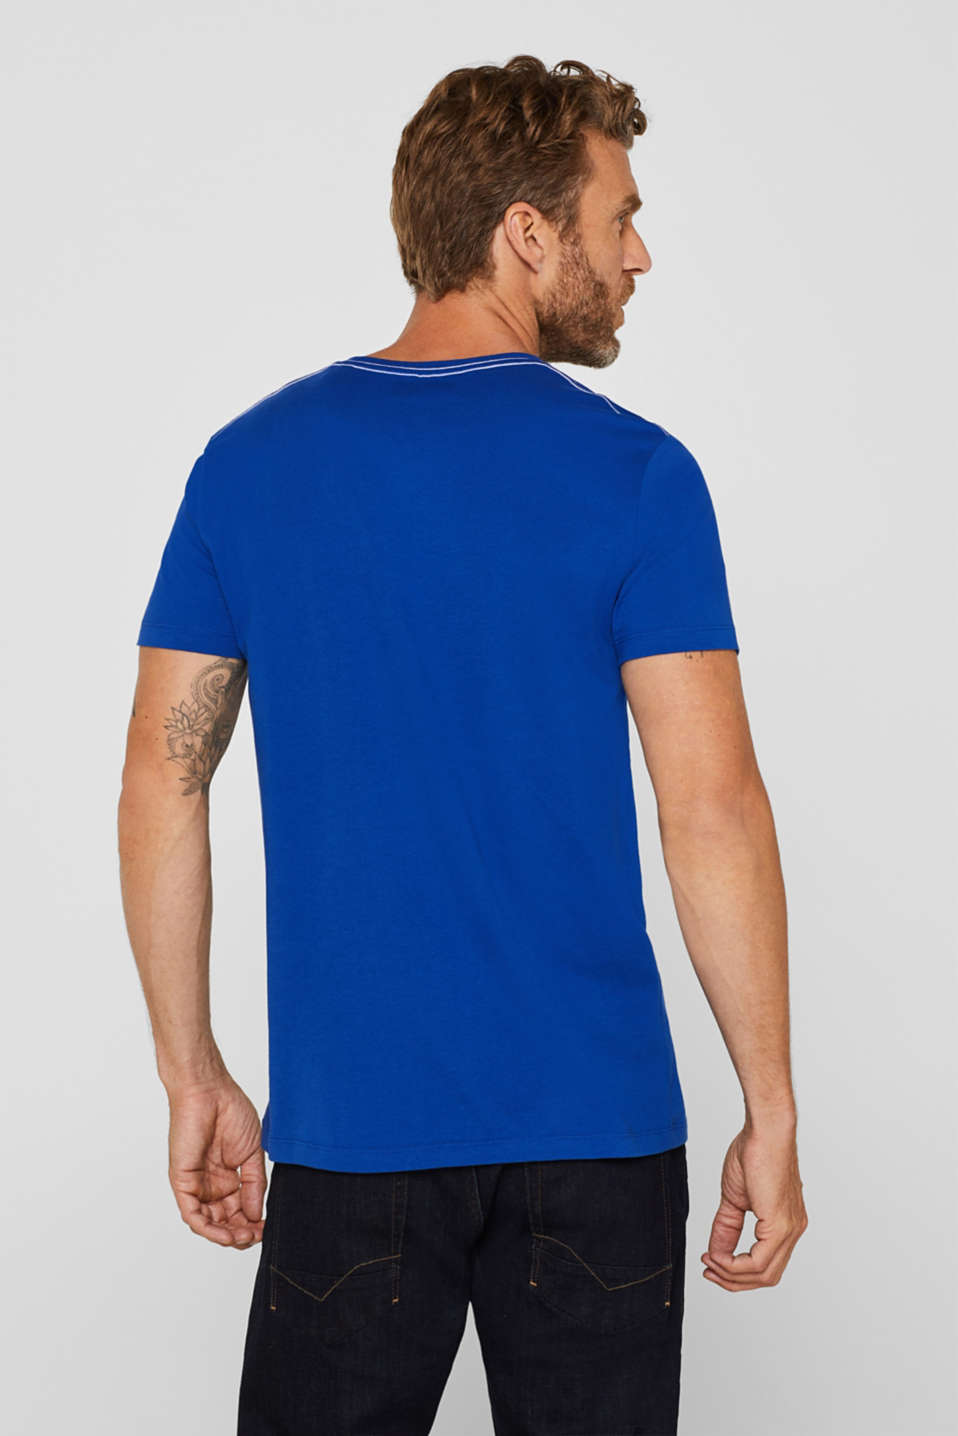 Jersey T-shirt with logo print, 100% cotton, BRIGHT BLUE, detail image number 3